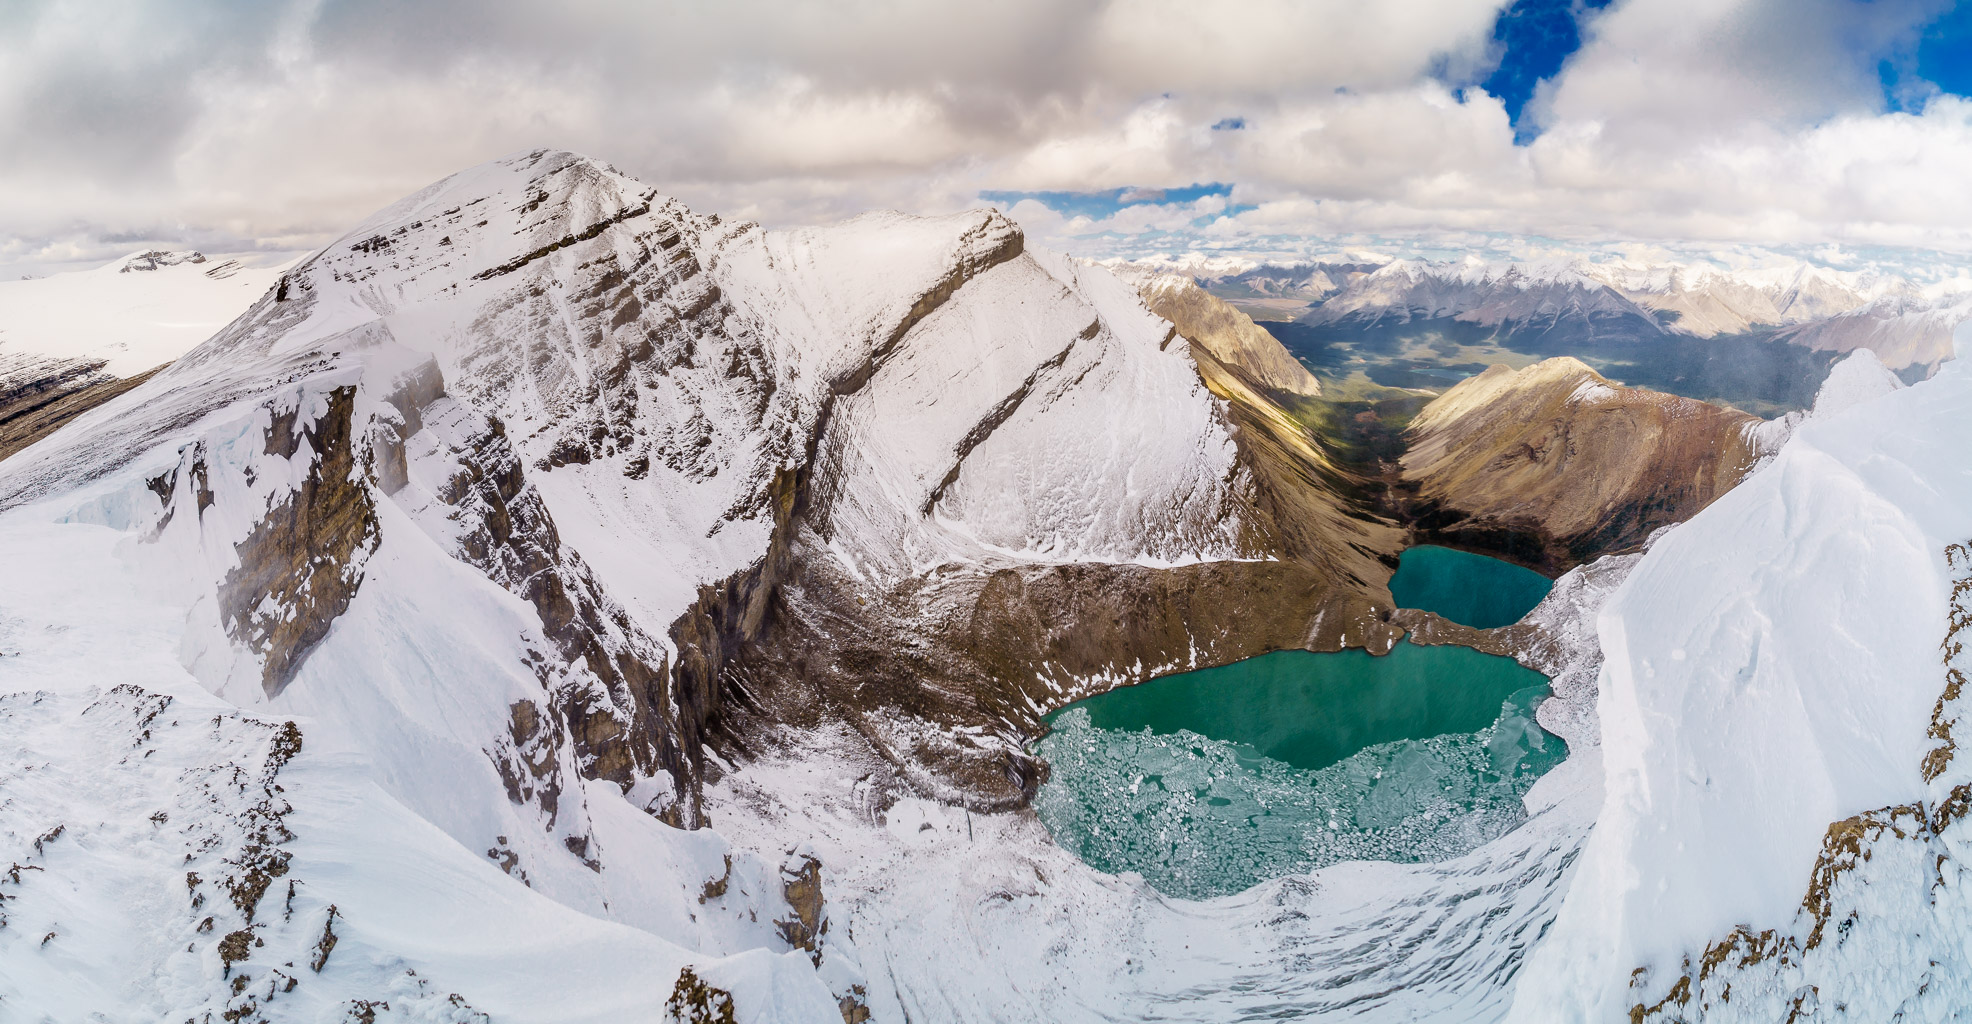 The summit of Mount Drummond at left with Drummond Lakes below.